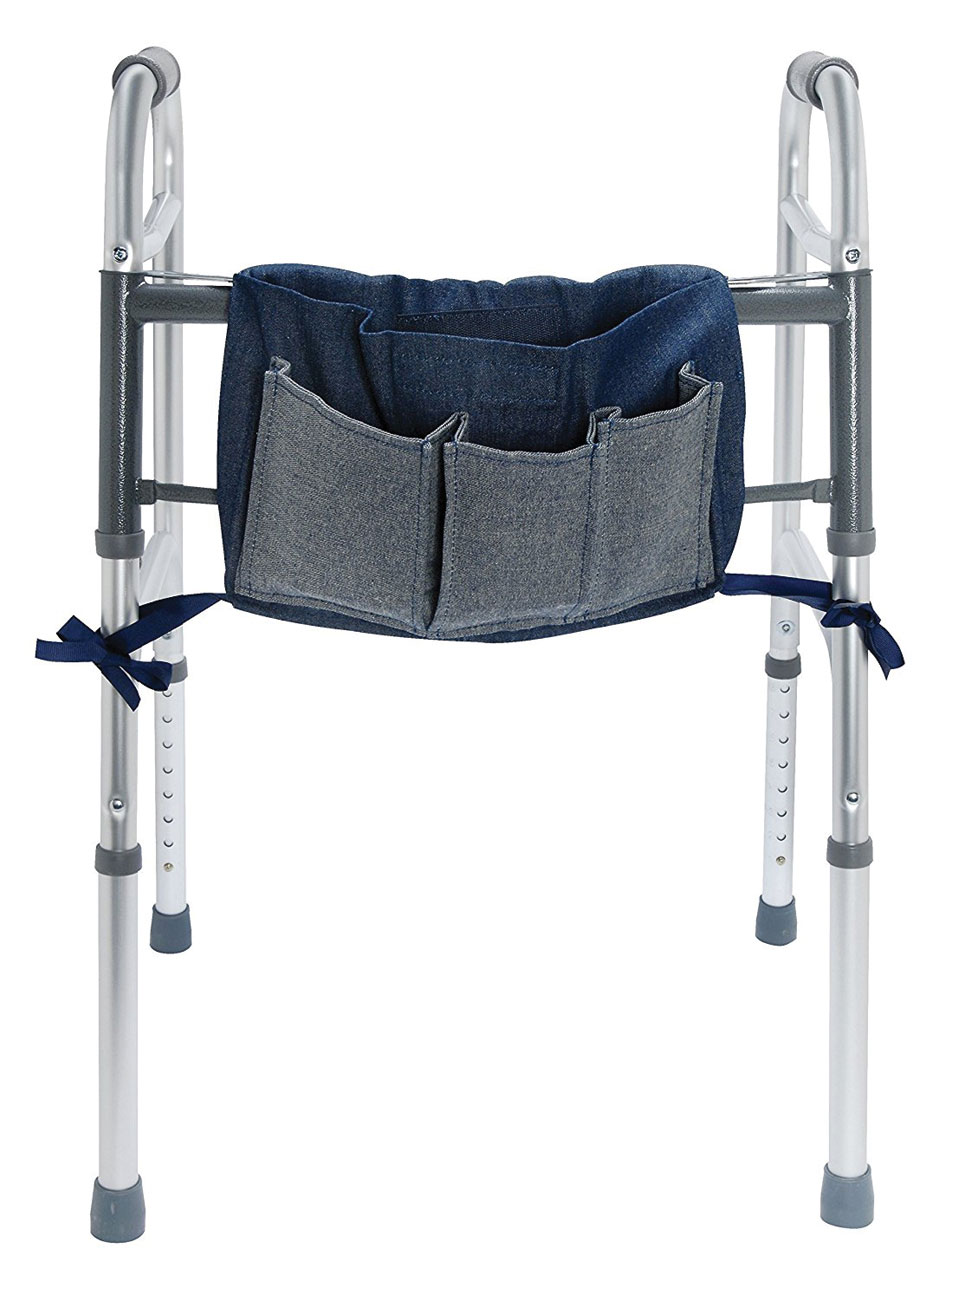 Carry-All Pouch for Walkers and Wheelchairs Price: $19.95